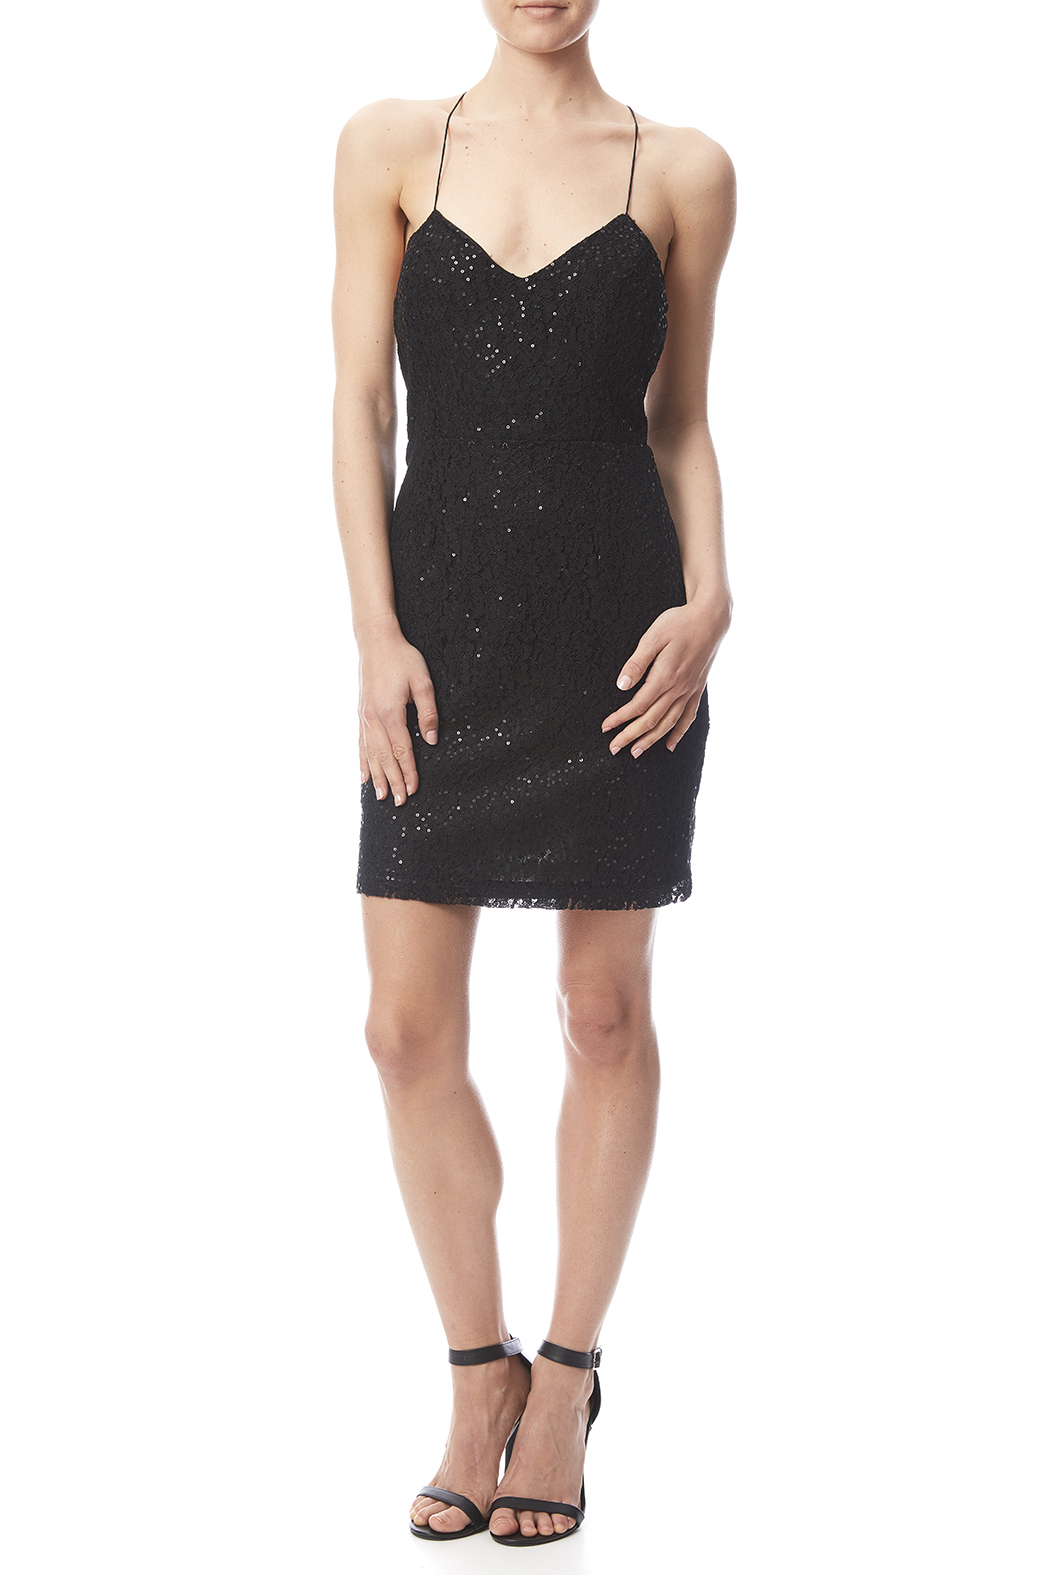 The Perfect LBD ~ for every body shape, any age & every occasion. Because not one shape fits or flatters everyone.